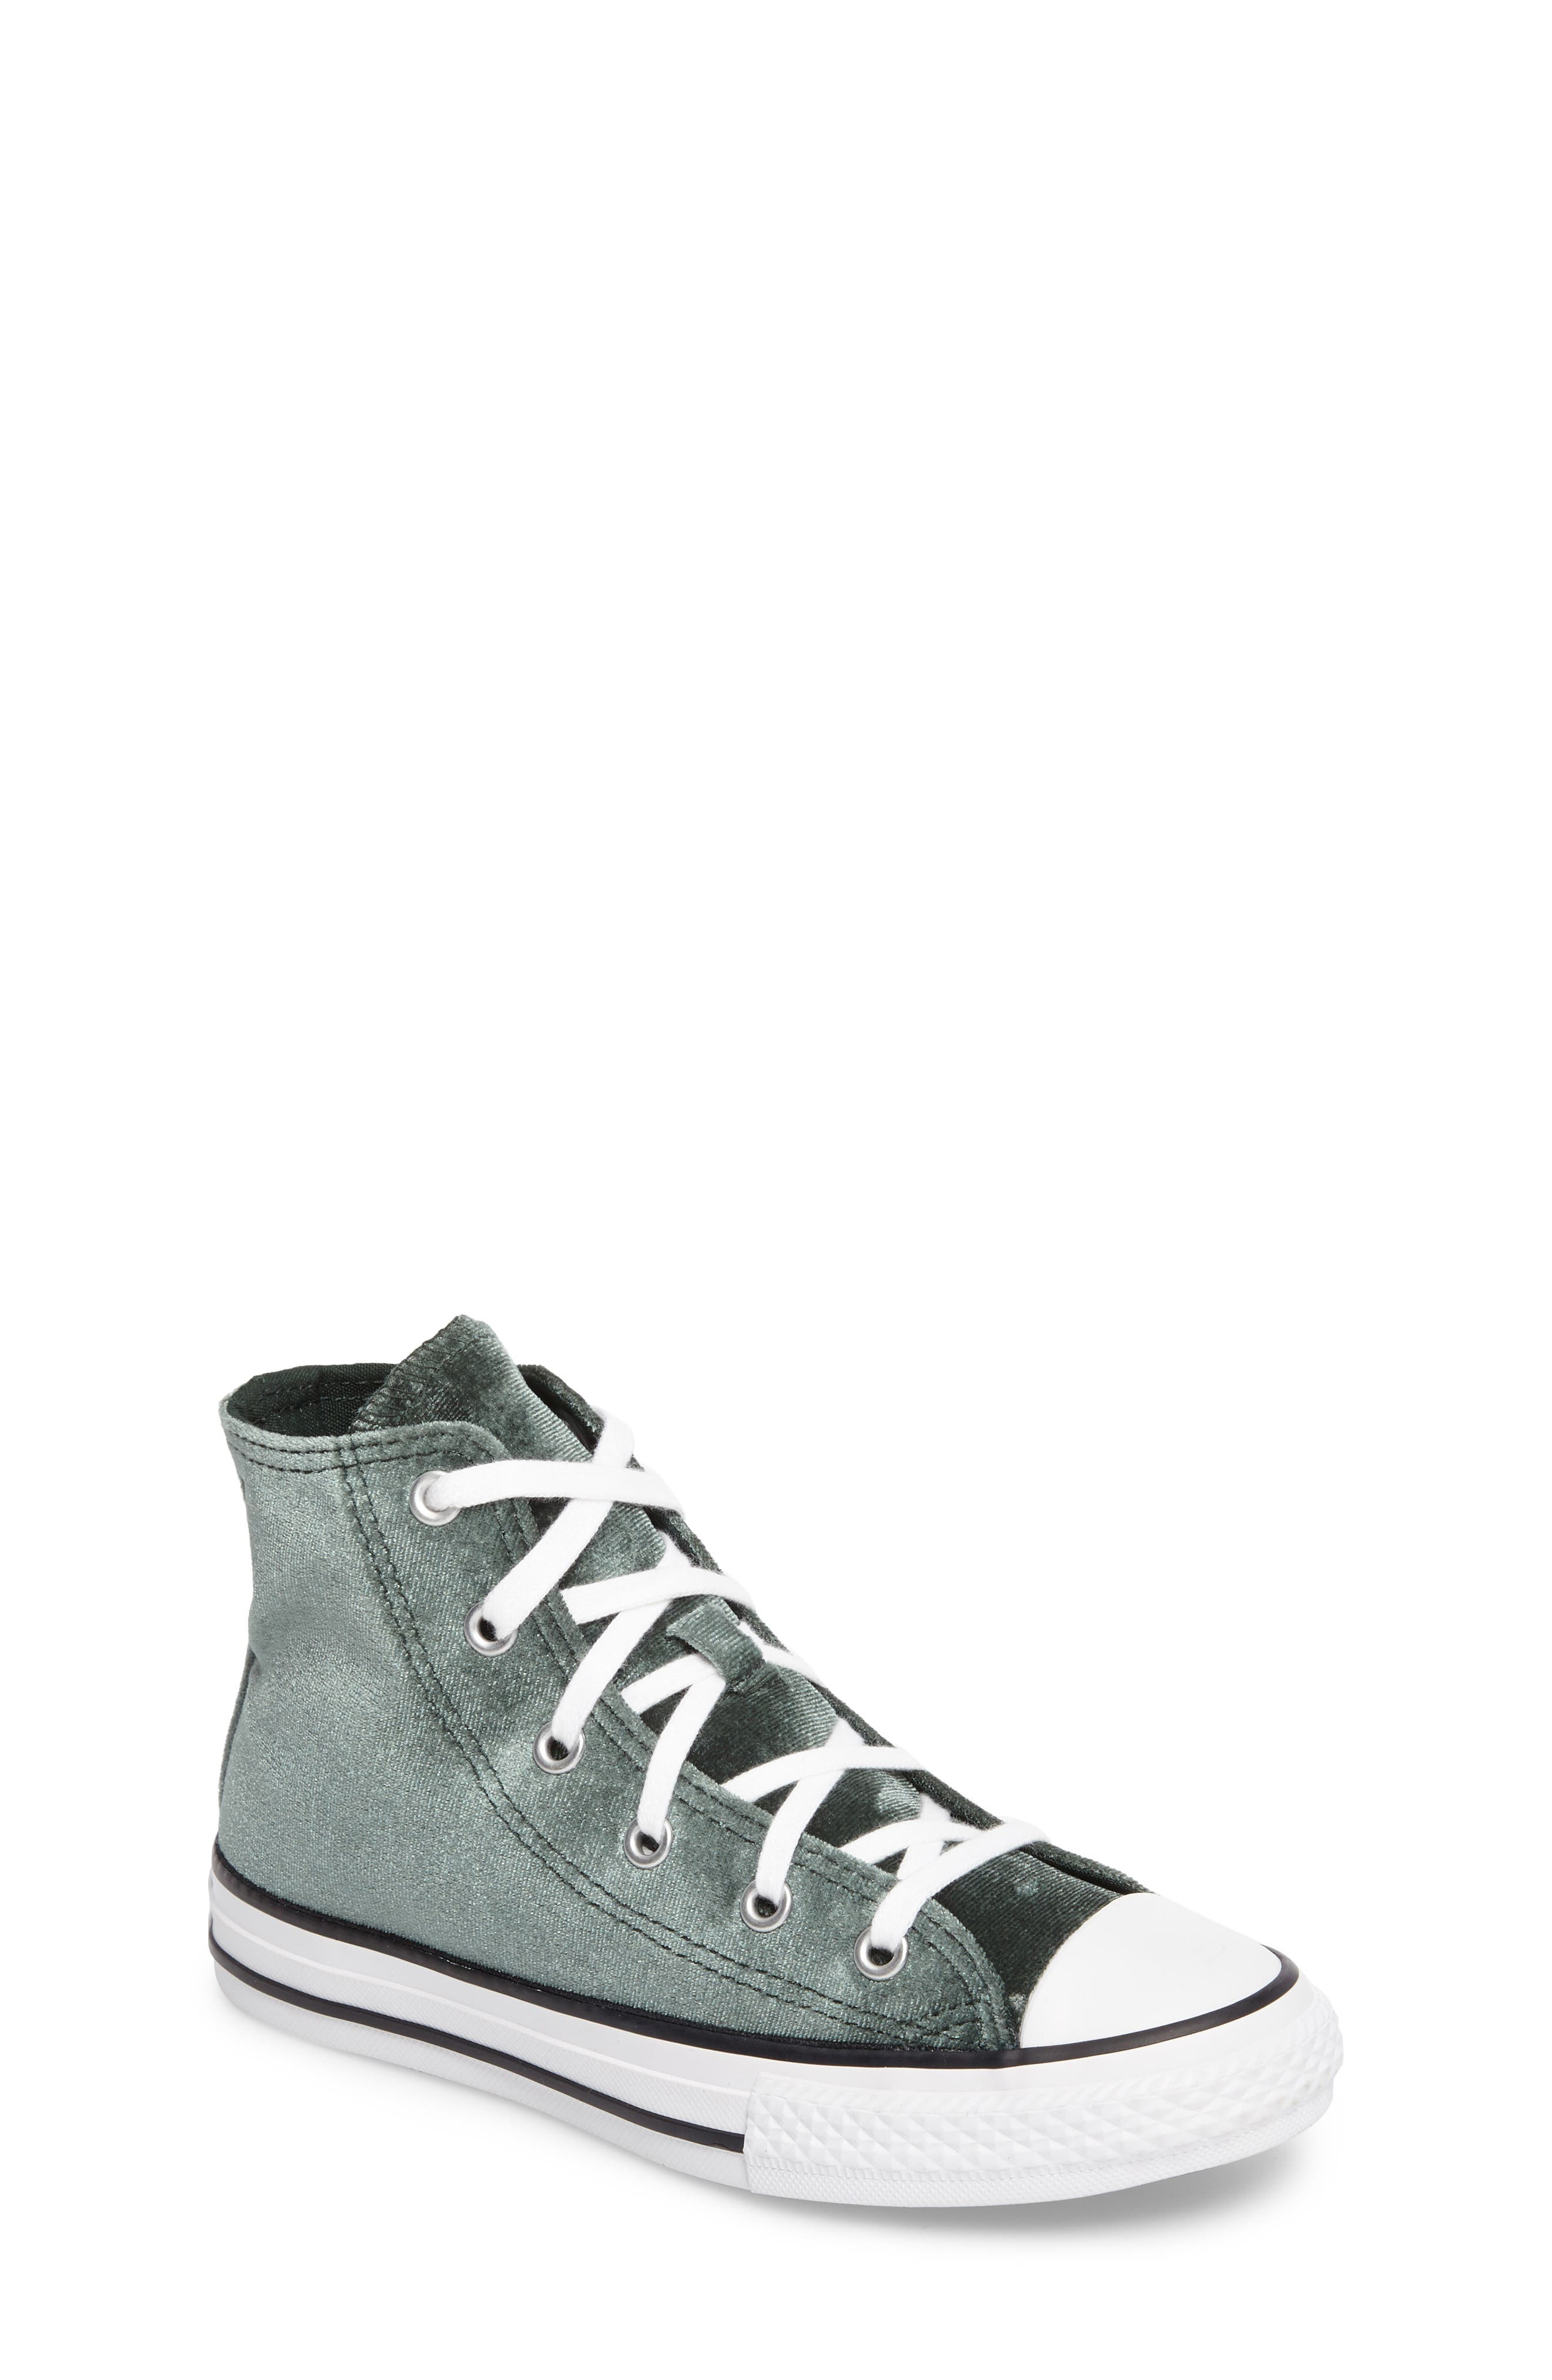 converse shoes high tops for girls. converse chuck taylor® all star® velvet high top sneaker (toddler, little kid shoes tops for girls